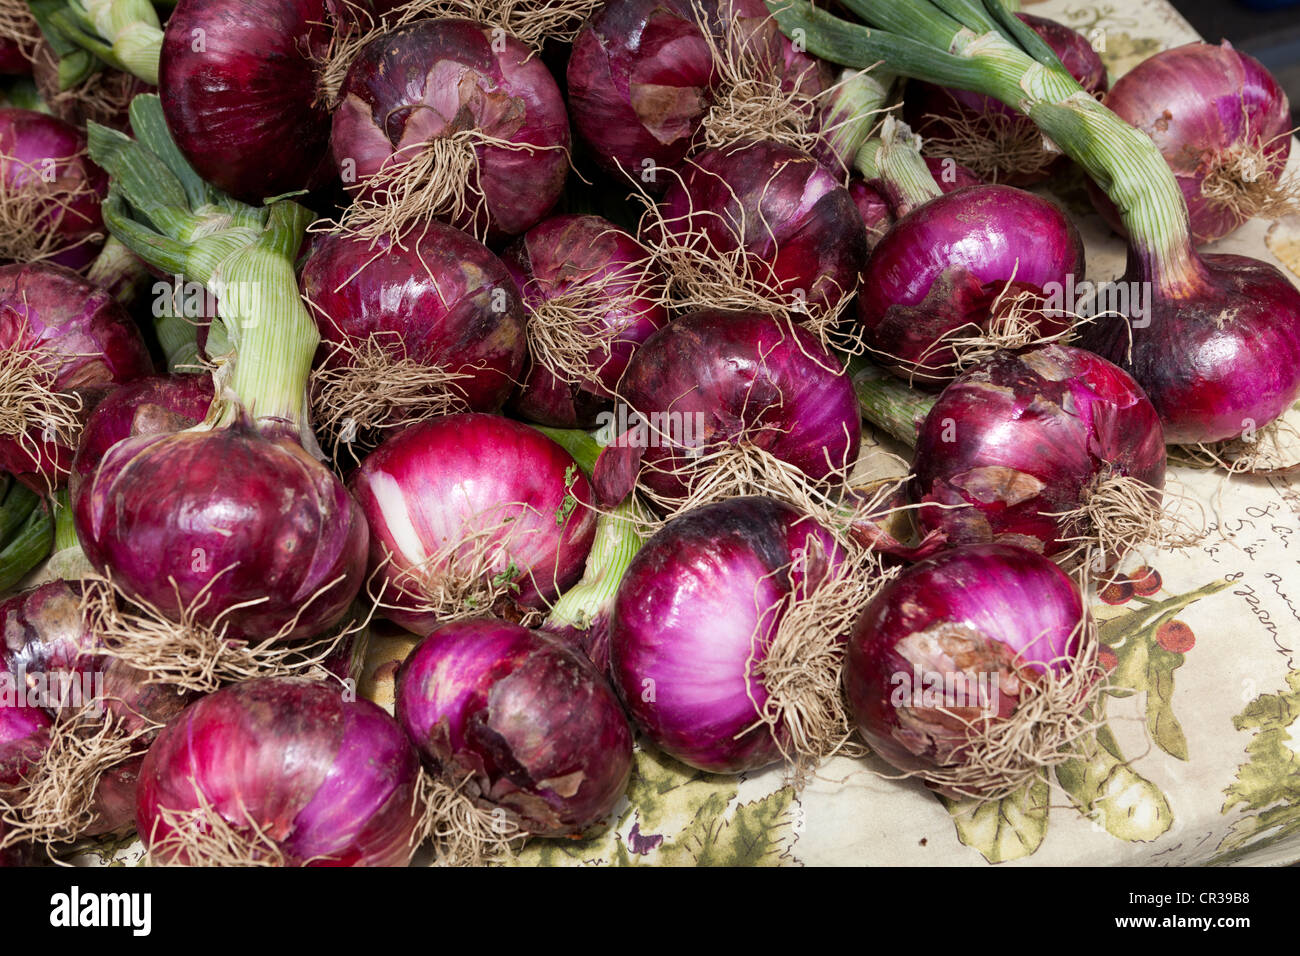 Red onions with stem at local farmers market - Stockton, California USA - Stock Image